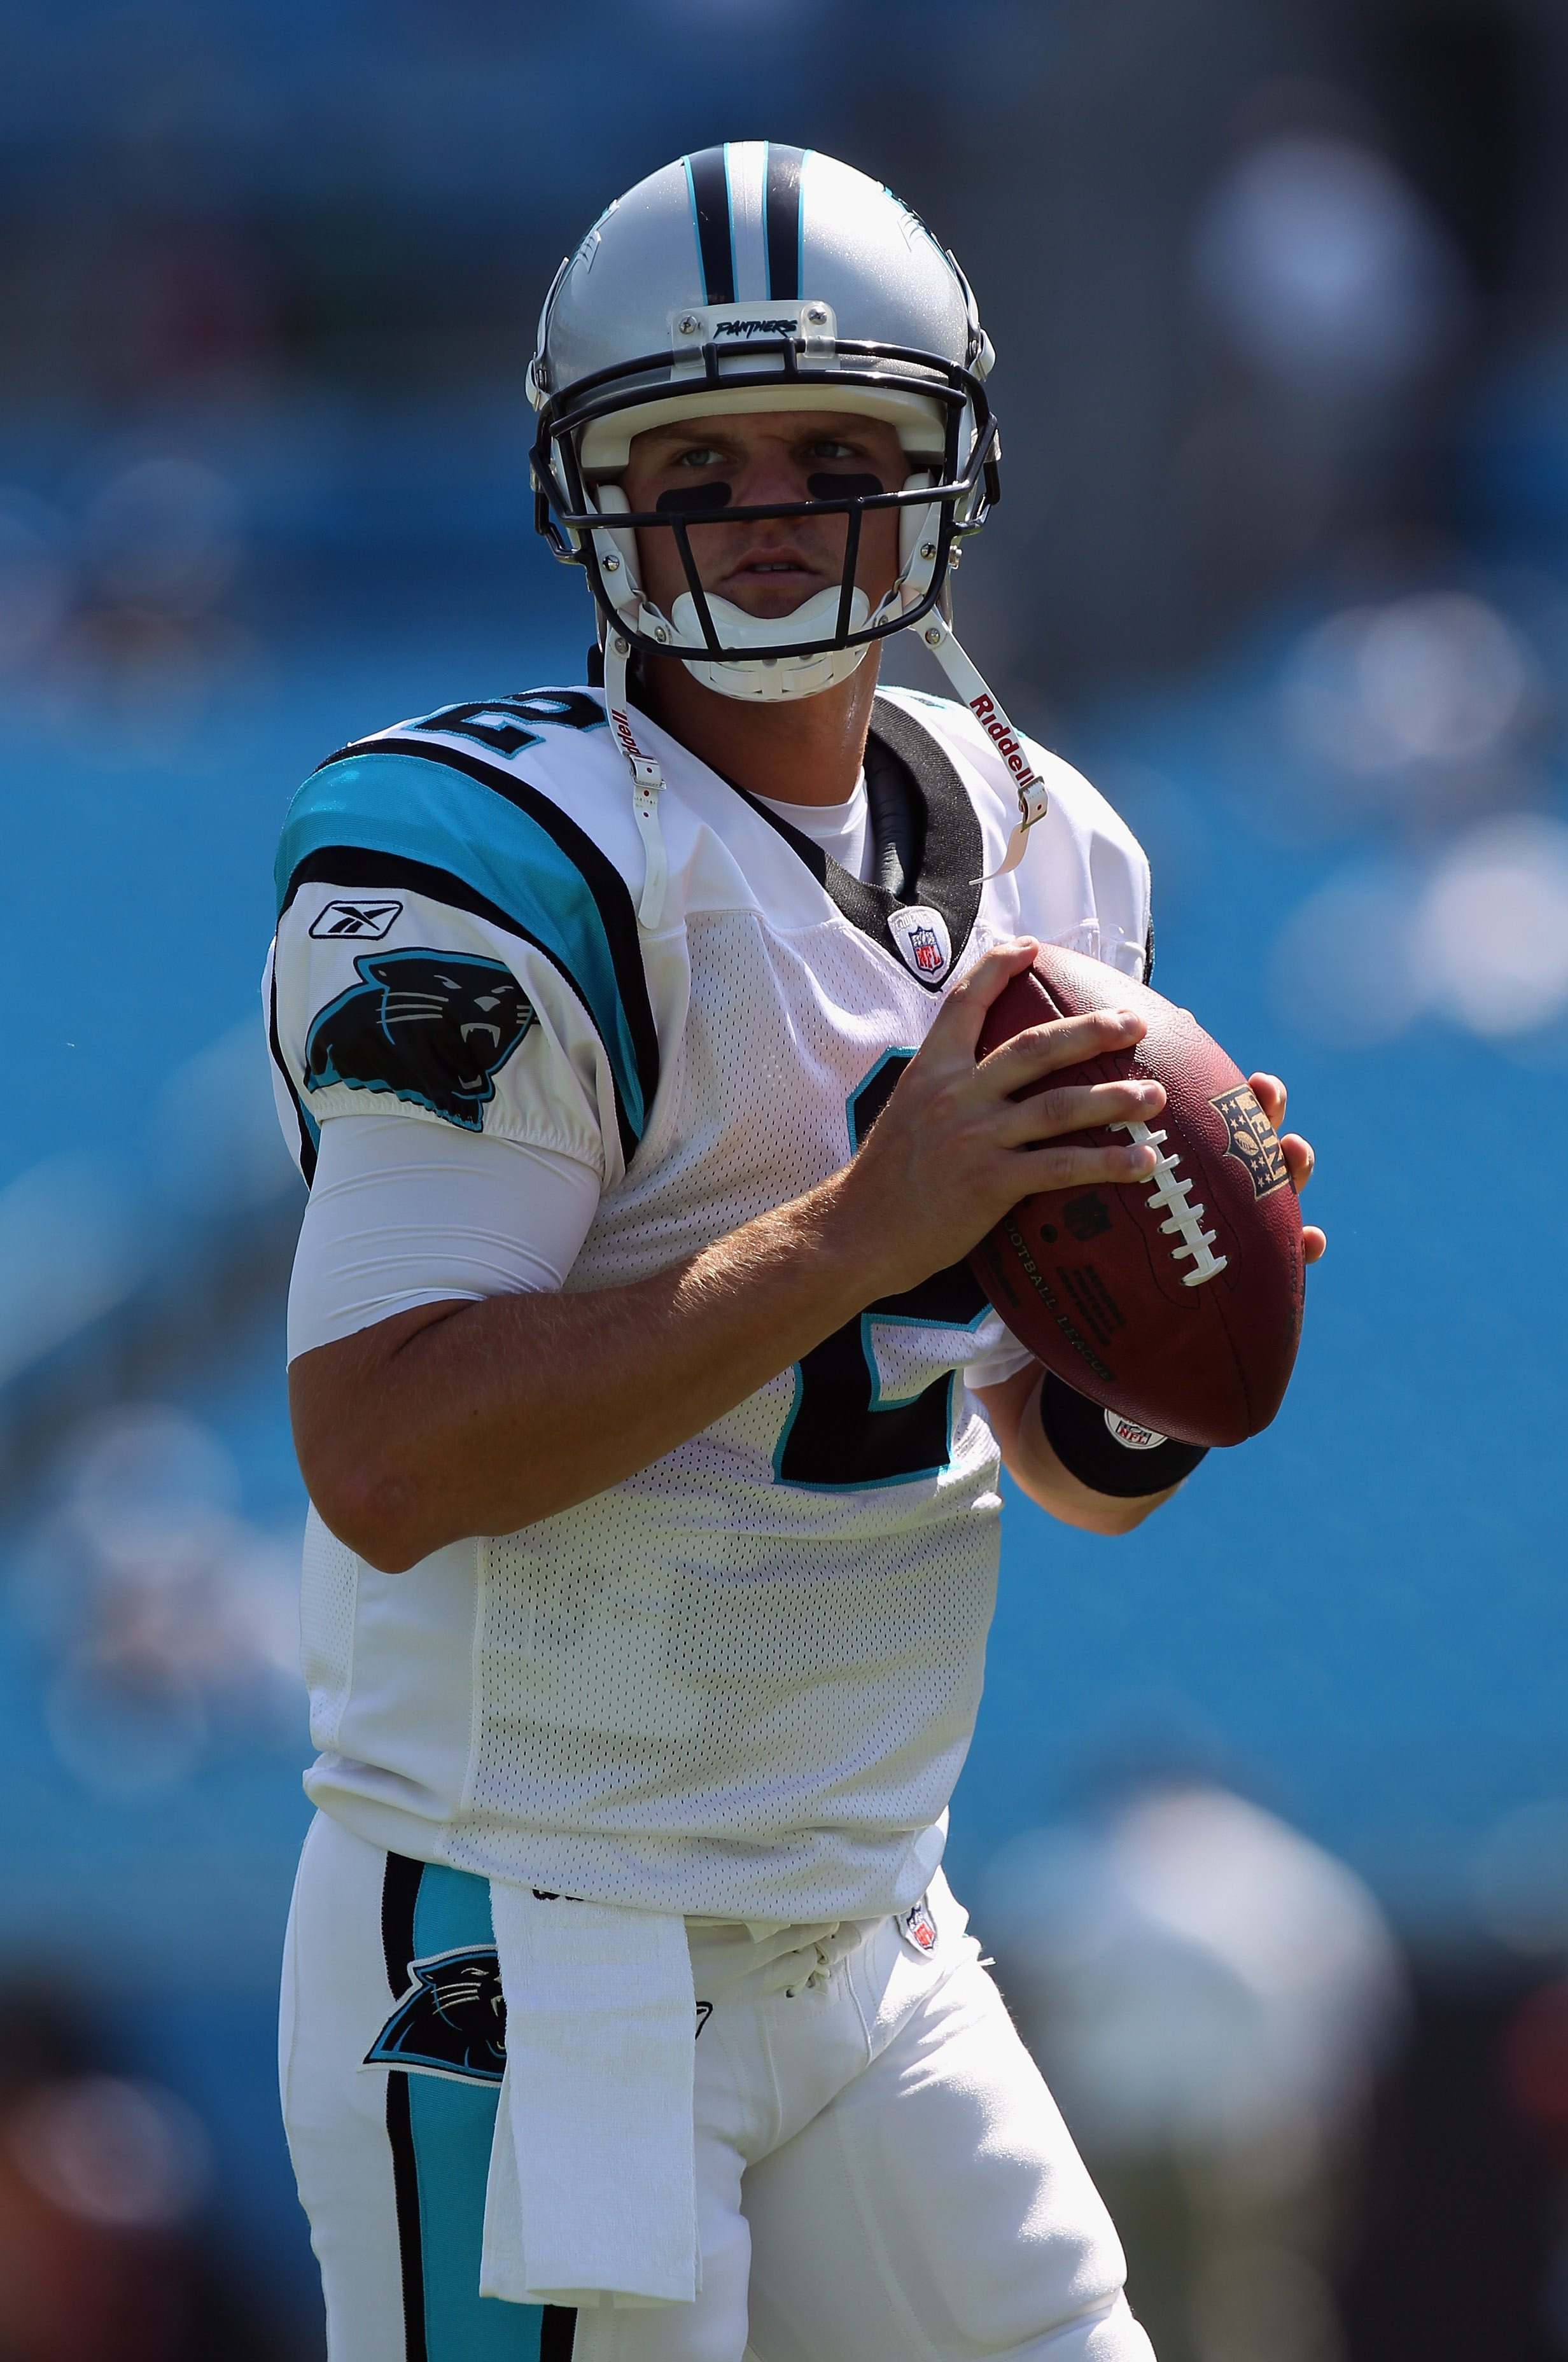 CHARLOTTE, NC - SEPTEMBER 19:  Jimmy Clausen #2 of the Carolina Panthers against the Tampa Bay Buccaneers during their game at Bank of America Stadium on September 19, 2010 in Charlotte, North Carolina.  (Photo by Streeter Lecka/Getty Images)